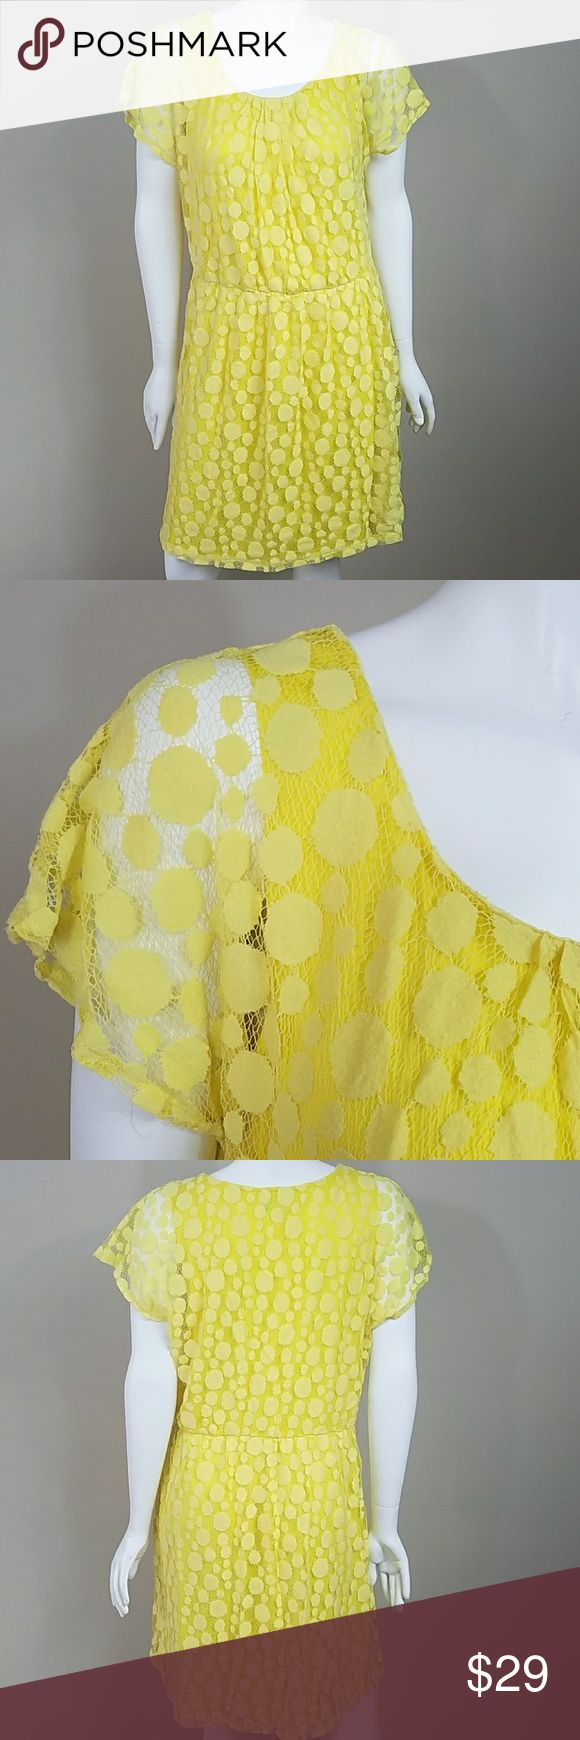 """Roz & Ali Yellow Dot Dress Roz & Ali Yellow Dot Dress.   Size 16.  Beautiful  yellow dot crochet overlays a solid yellow lining with plenty of stretch. Lace Overlay measures 21"""" across the bust.  37.5"""" long. Dress is 60% cotton, 4% nylon. Lining is 100% polyester. Roz & Ali Dresses"""